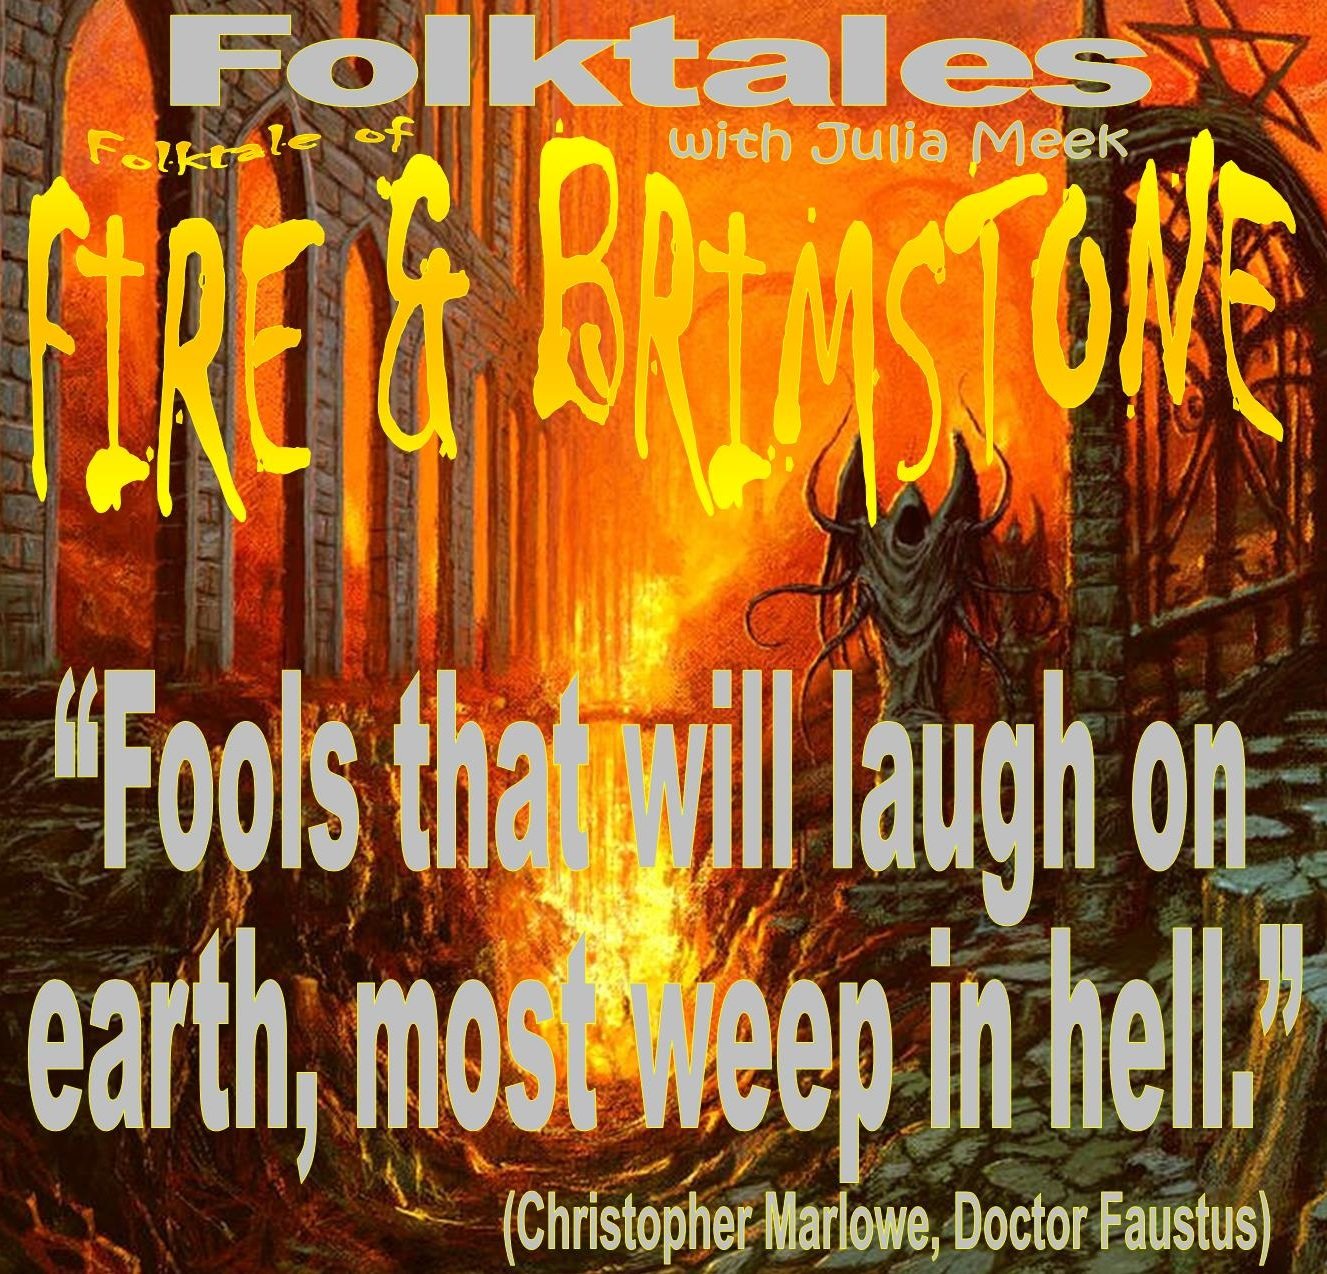 Caption: WBOI's Folktale of Fire & Brimstone, Credit: Julia Meek